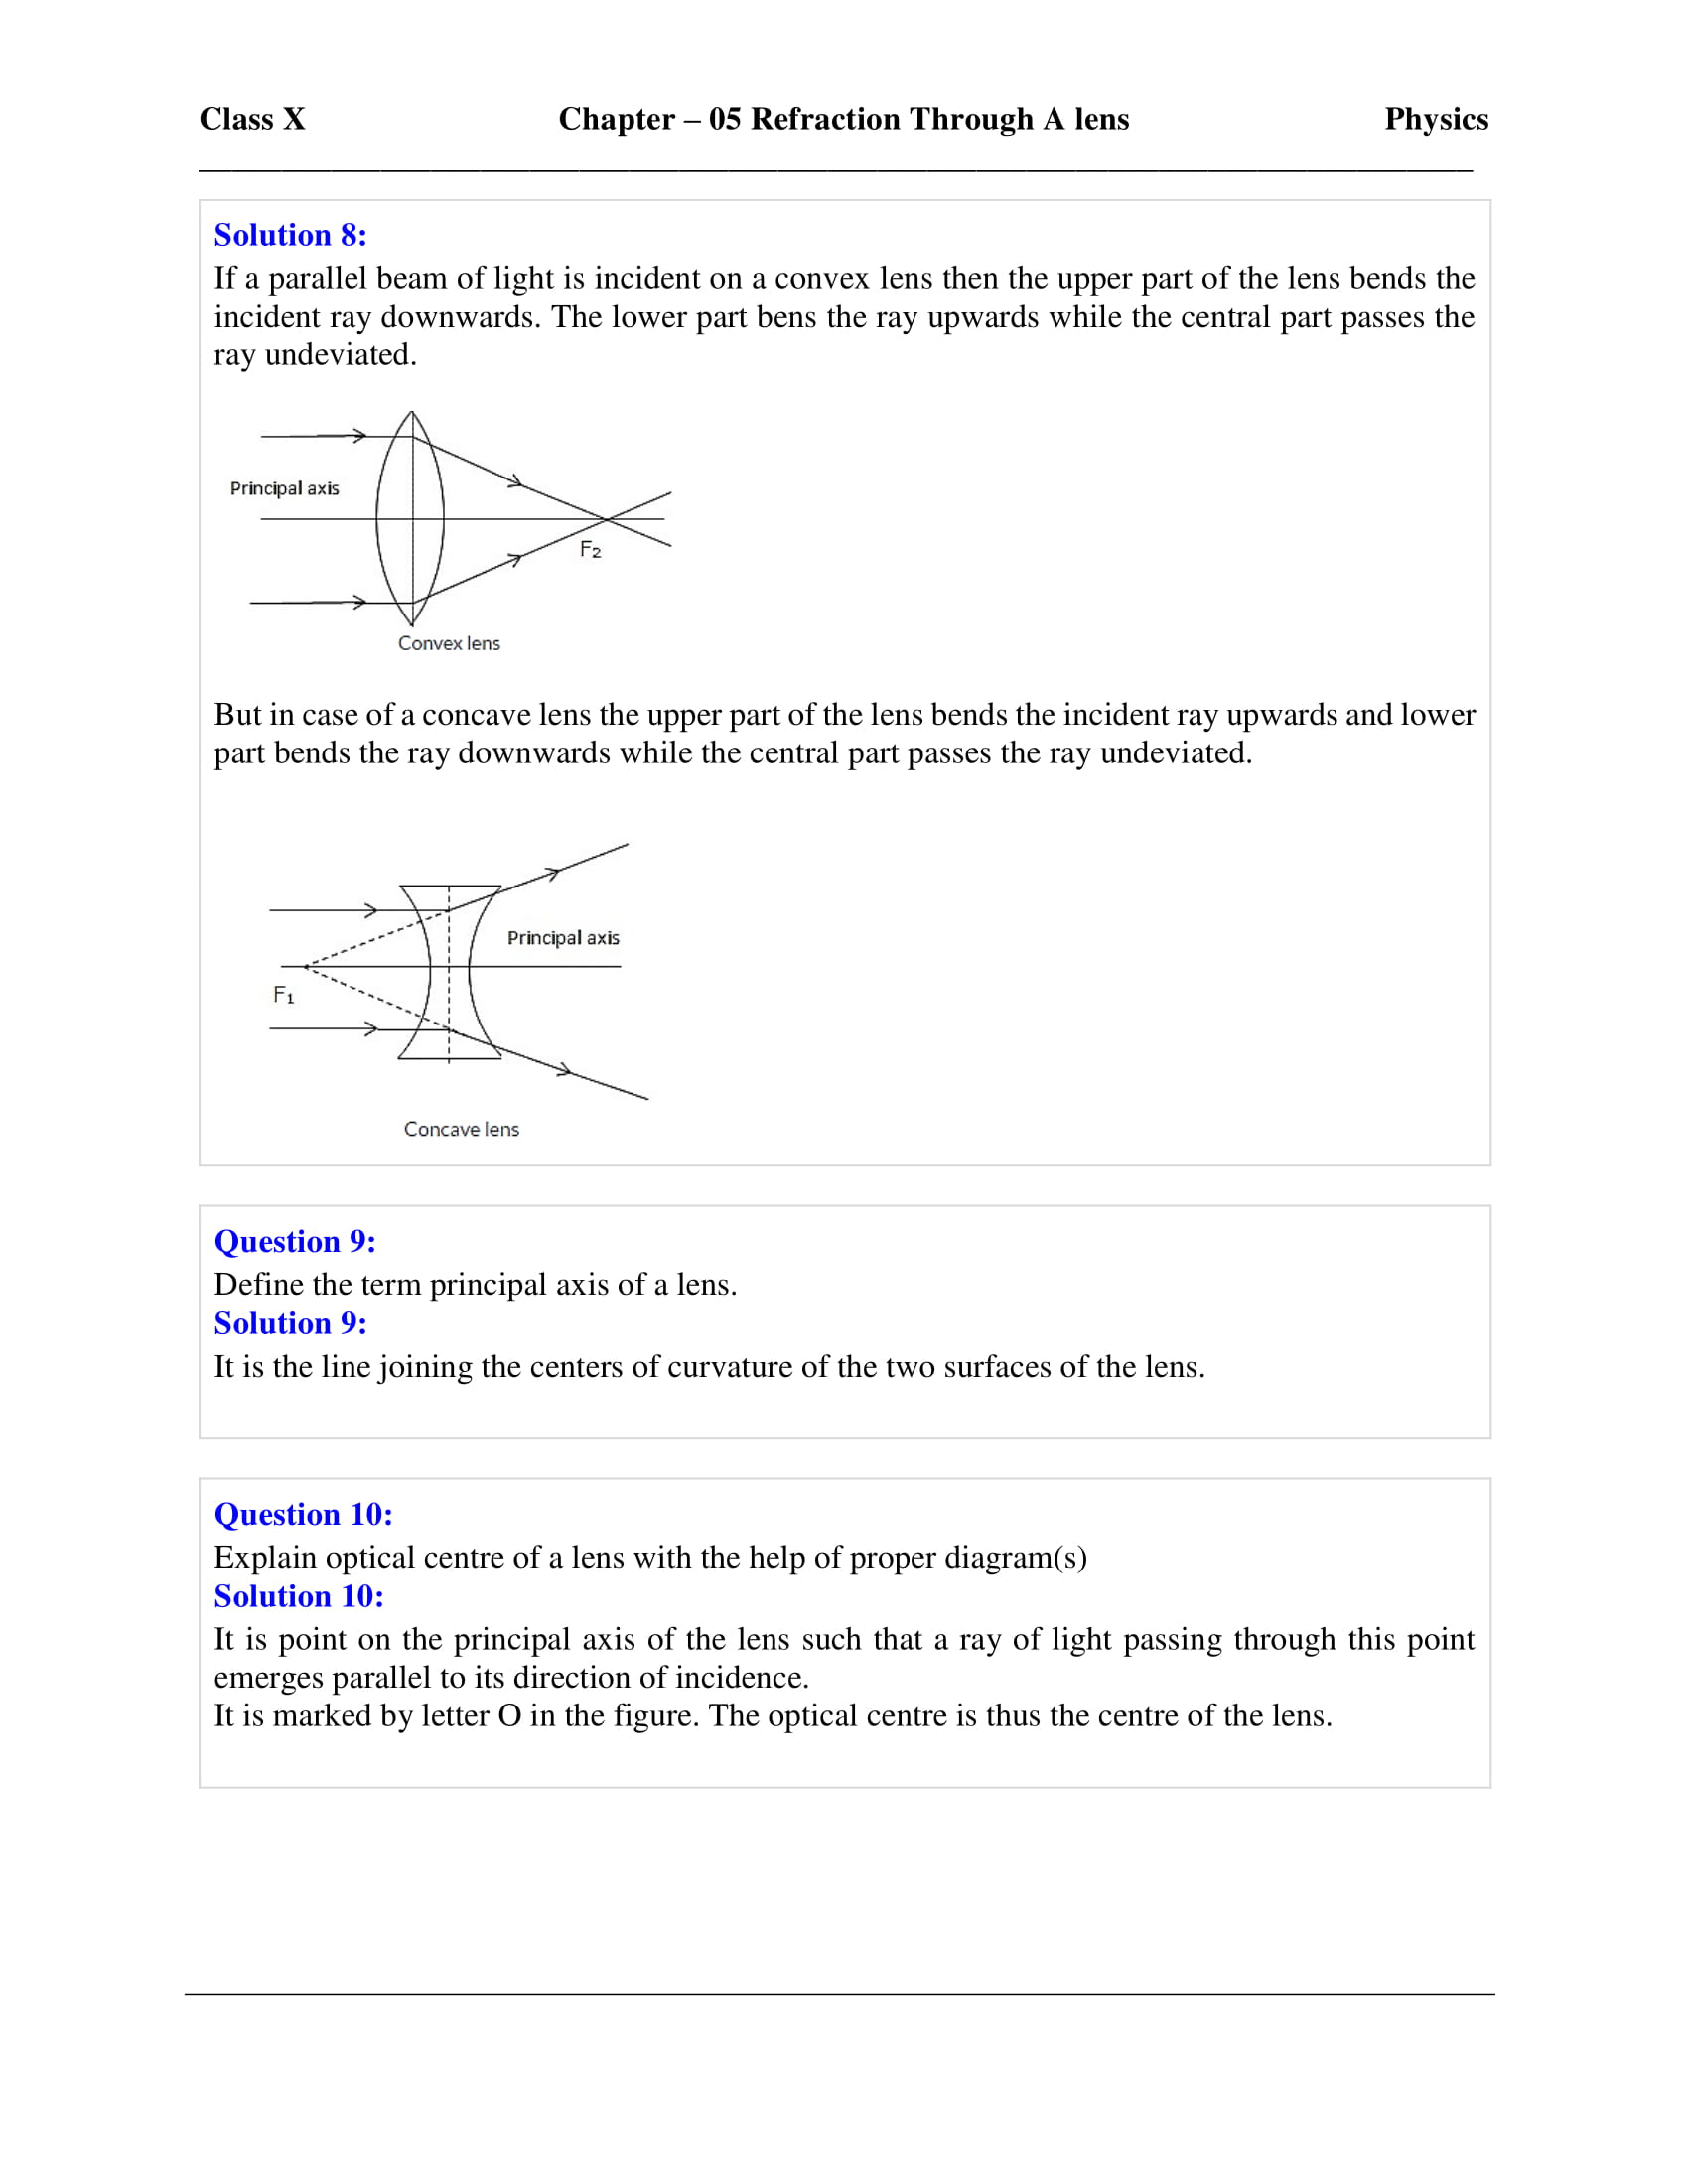 icse-selina-physics-solutions-class-10-chapter-5-refraction-through-a-lens-03